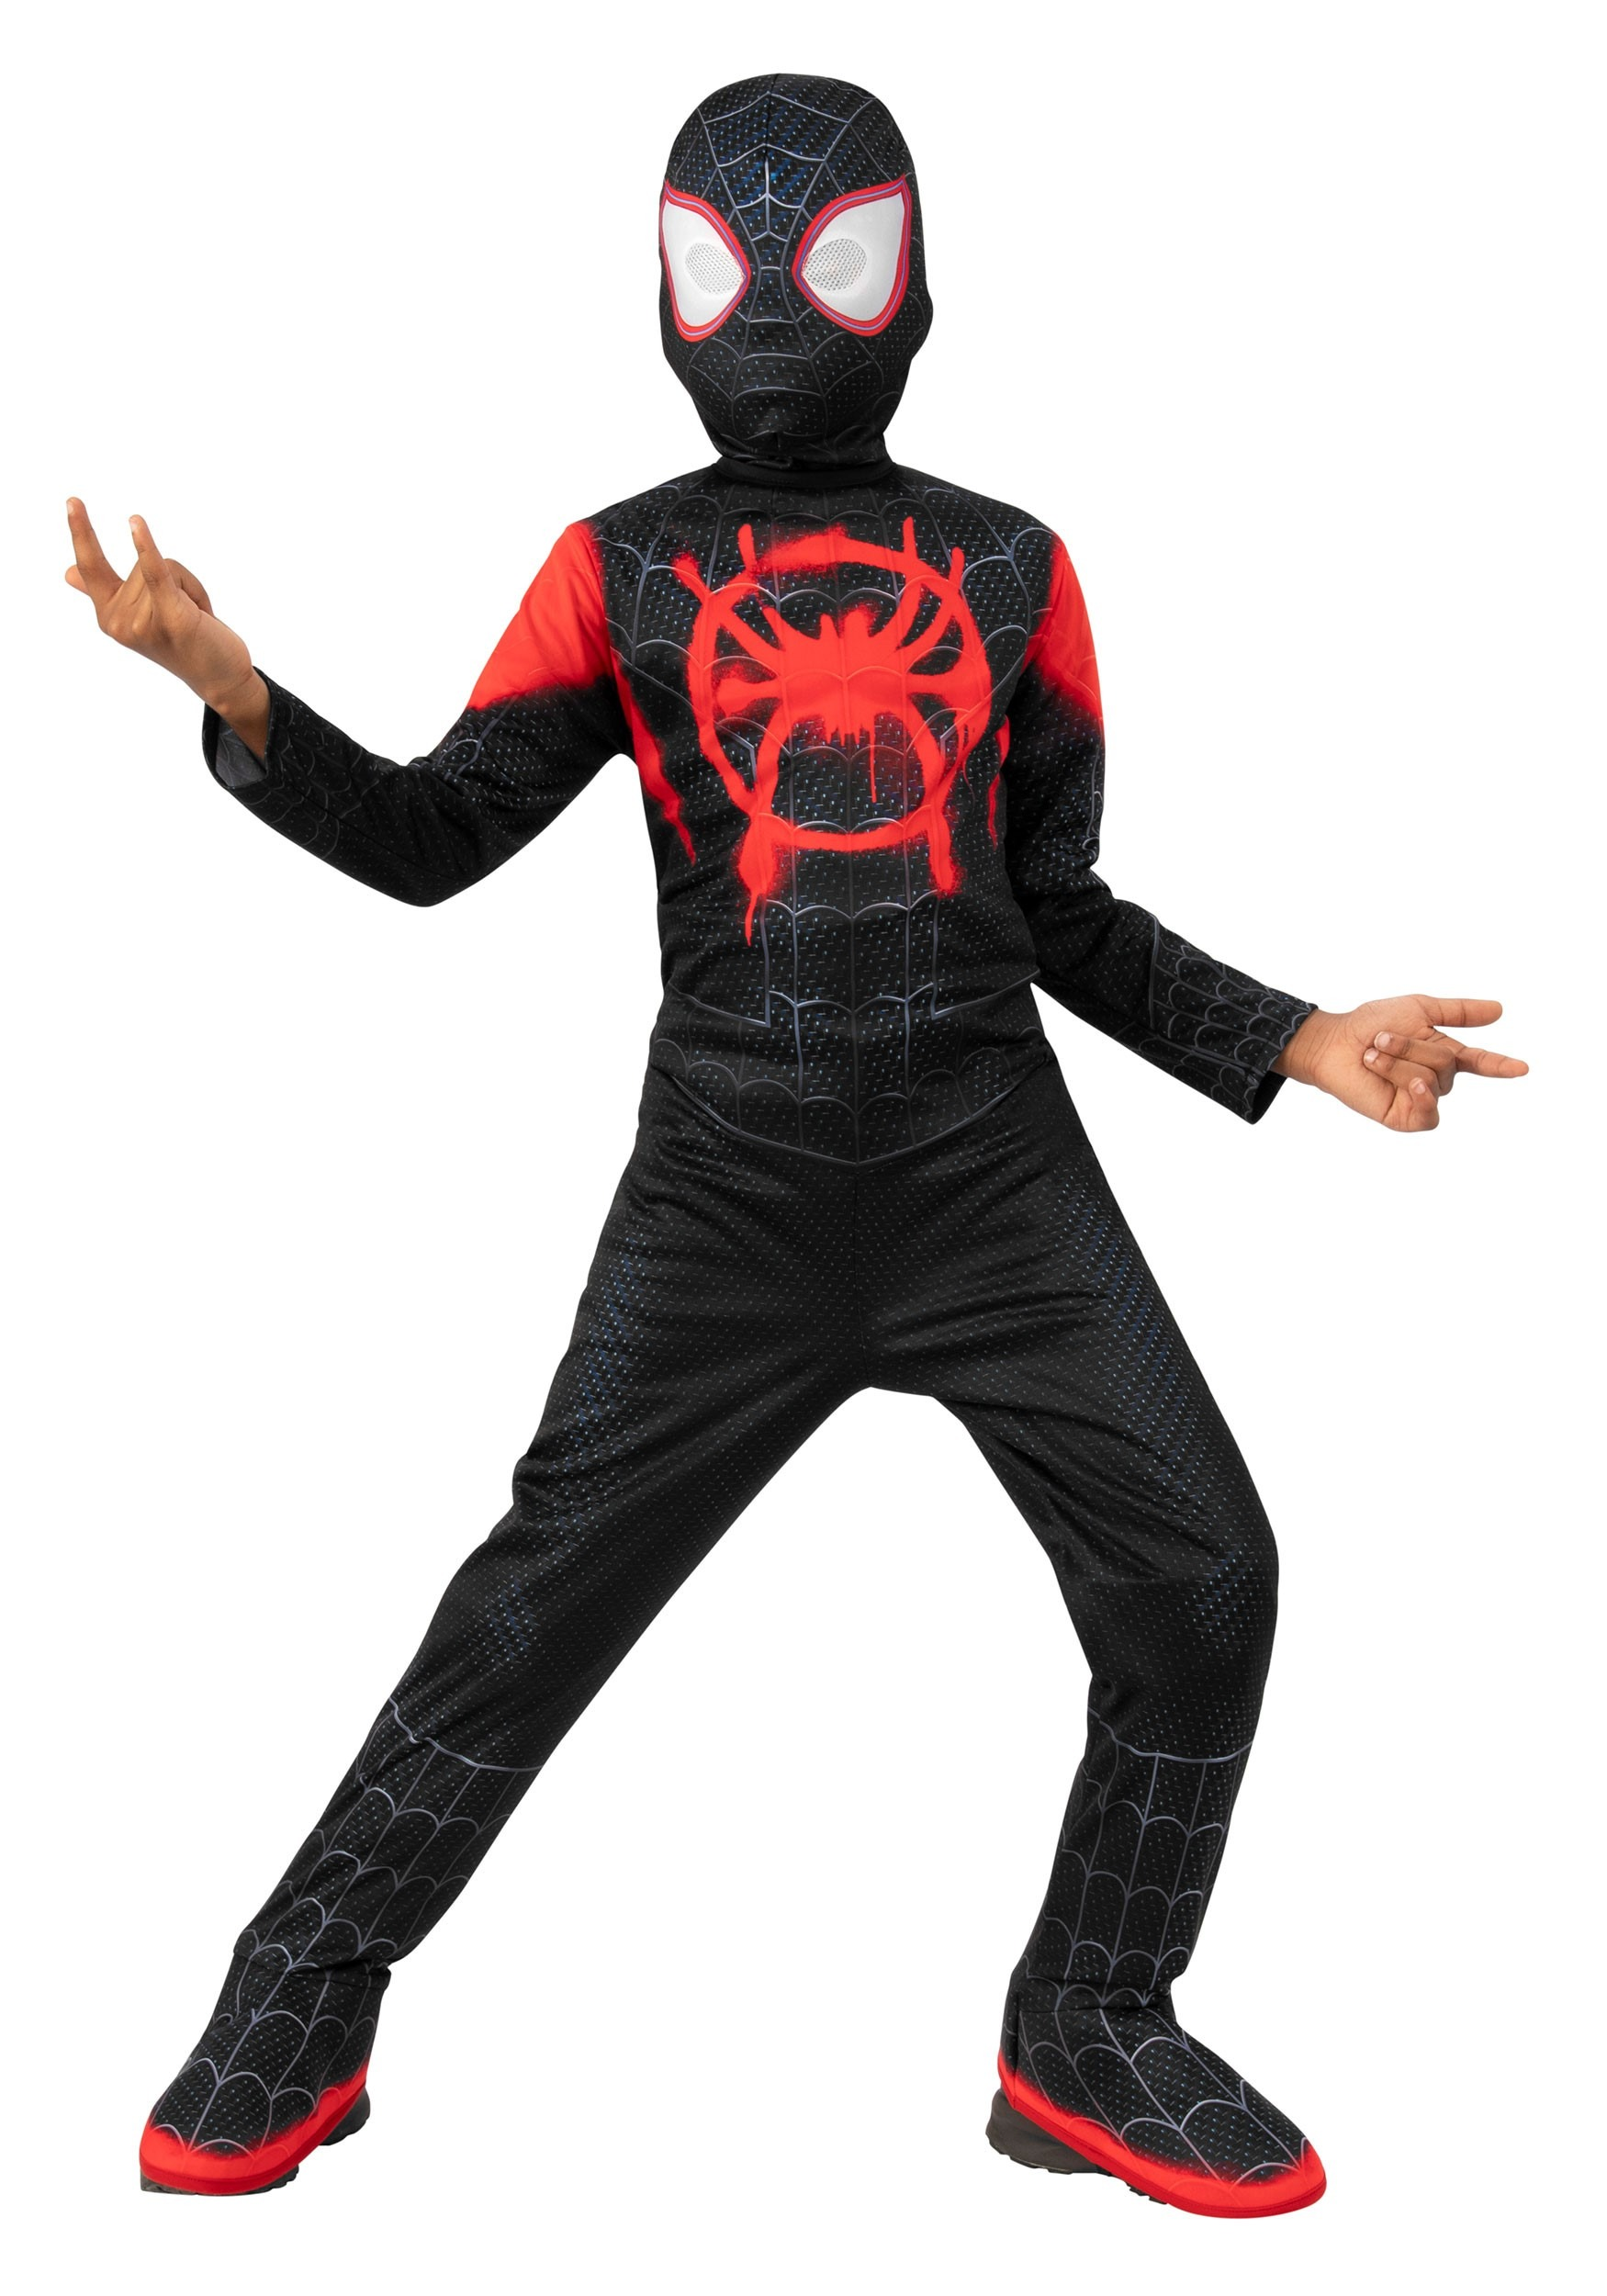 Miles Morales Into the Spider-Verse Kids Spider-Man Costume